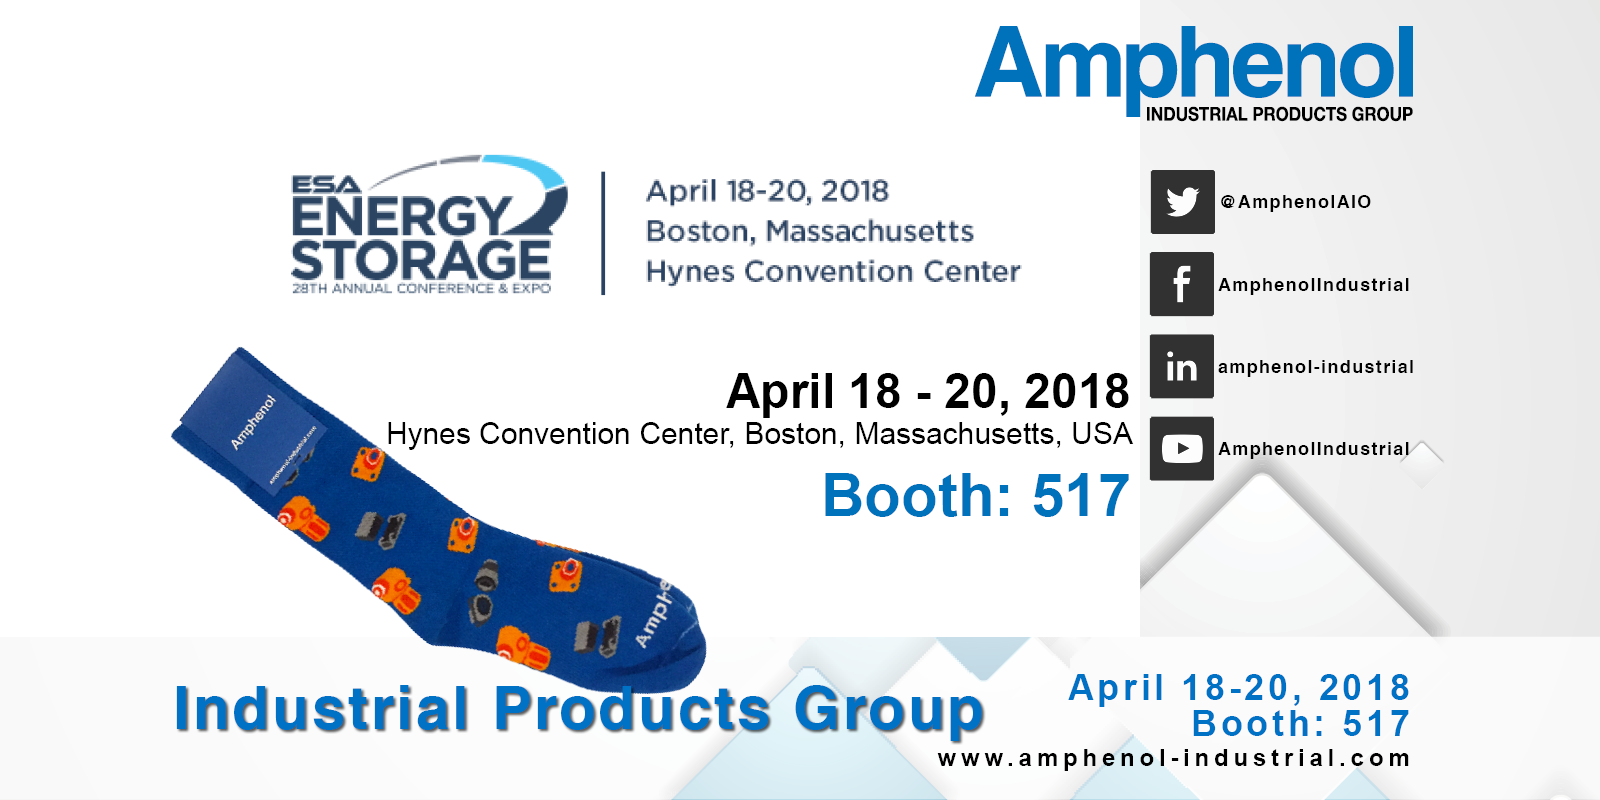 Energy Storage 28th Annual Conference and Expo 2018